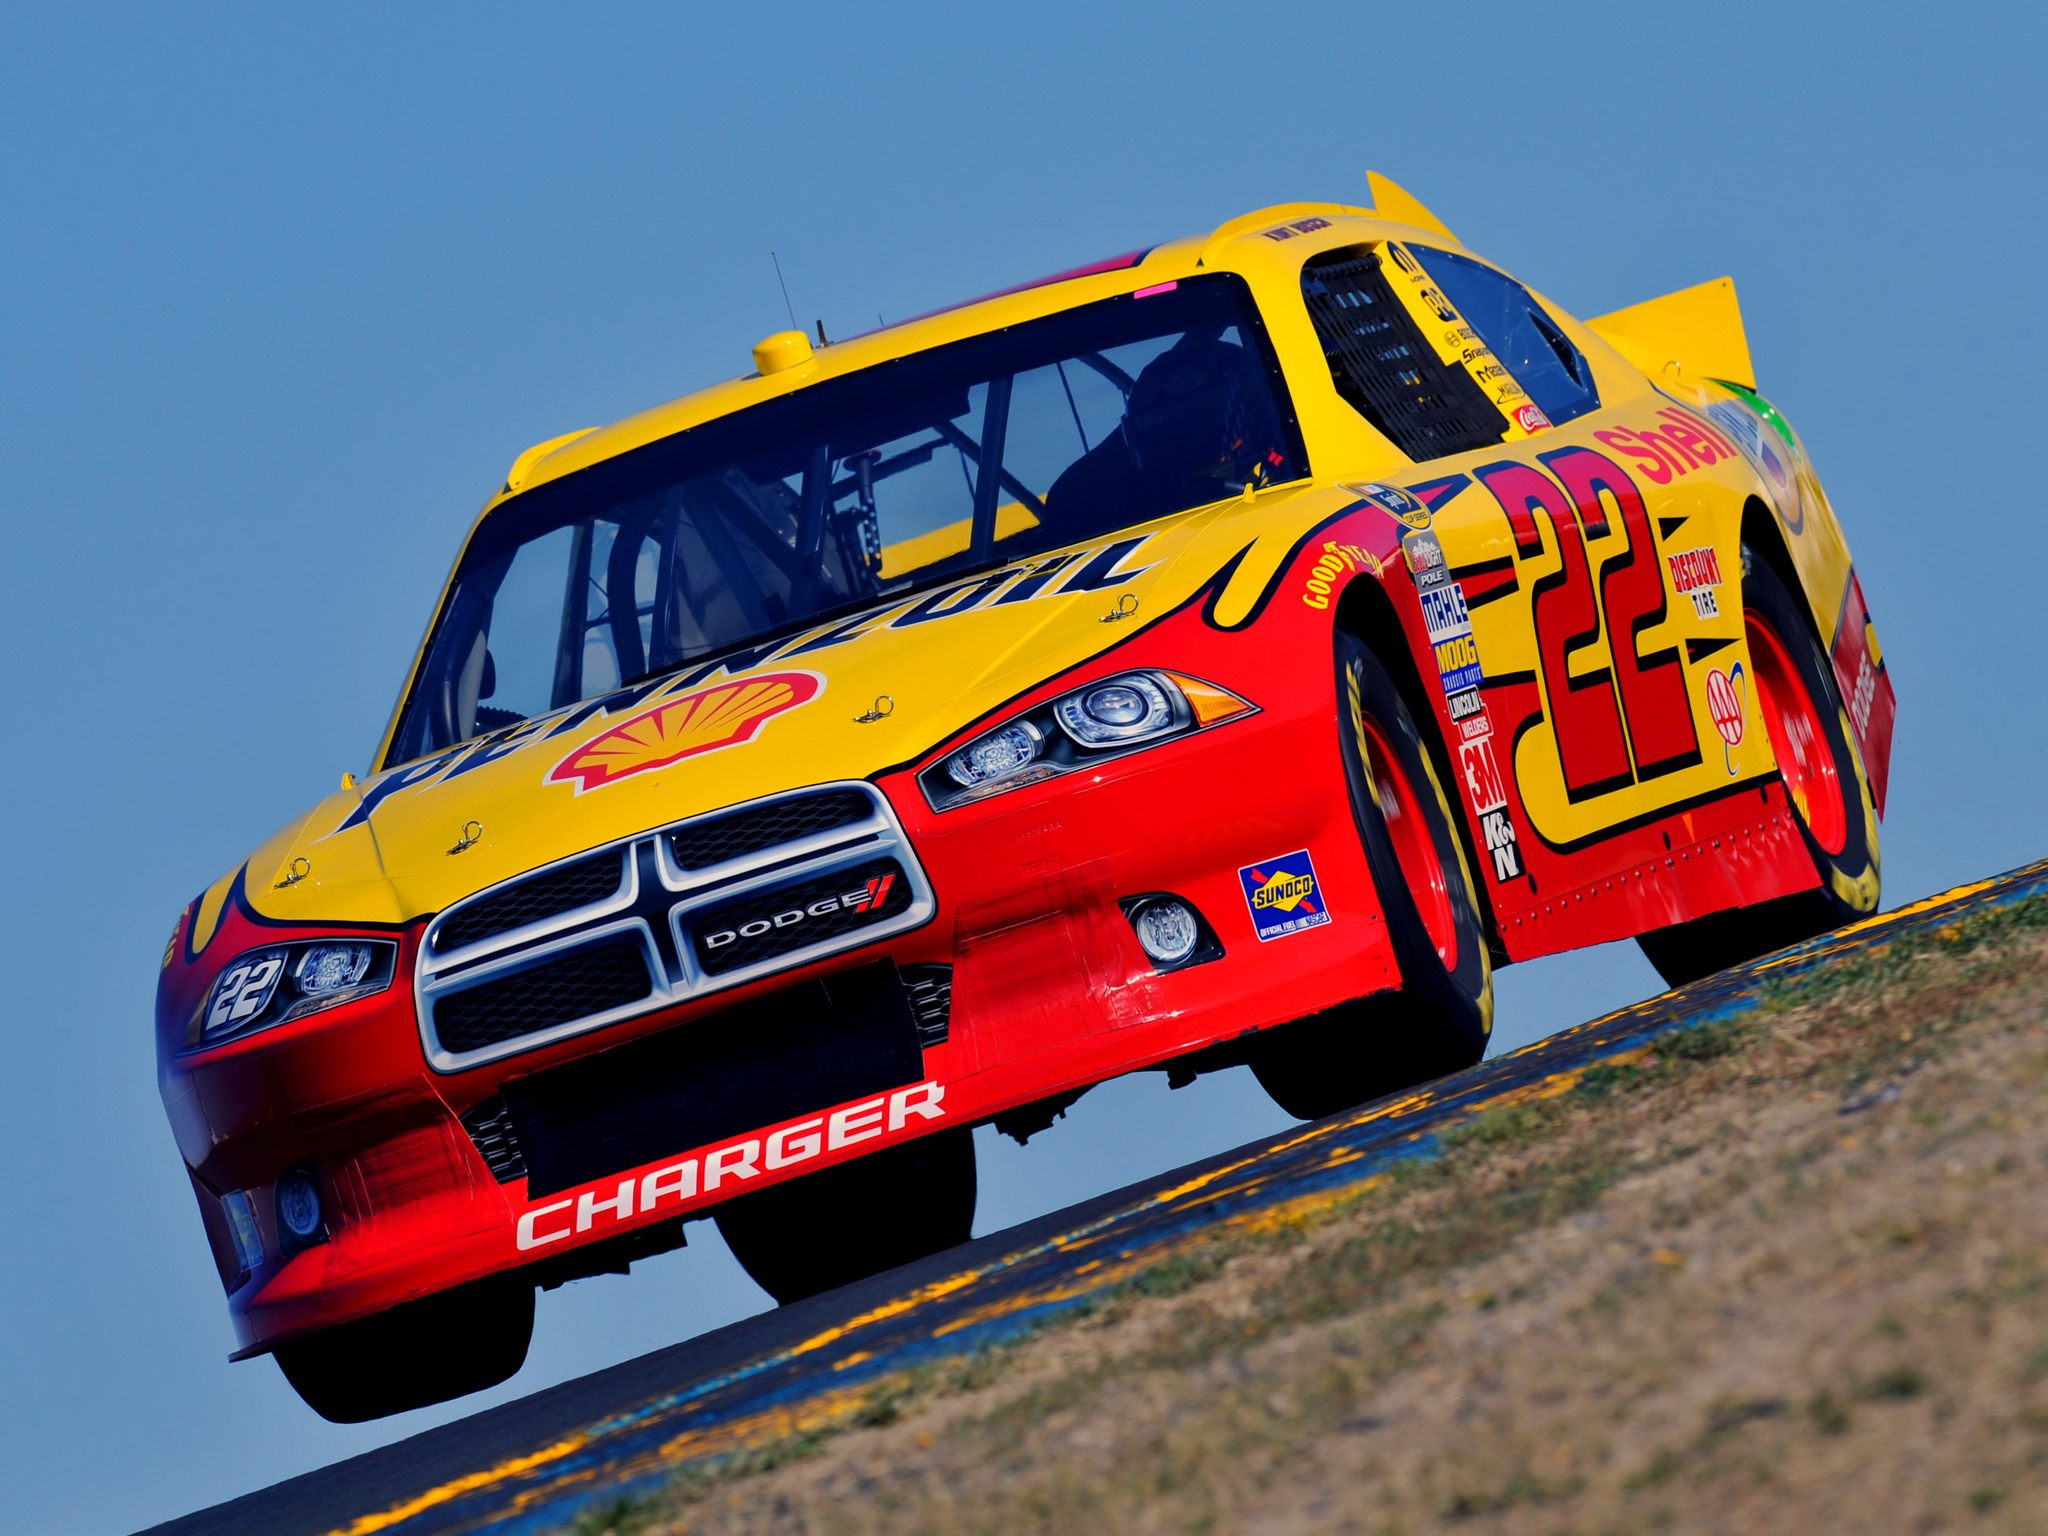 Dodge charger nascar sprint cup series race car 39 2011 hd - Racing cars wallpapers for mobile ...